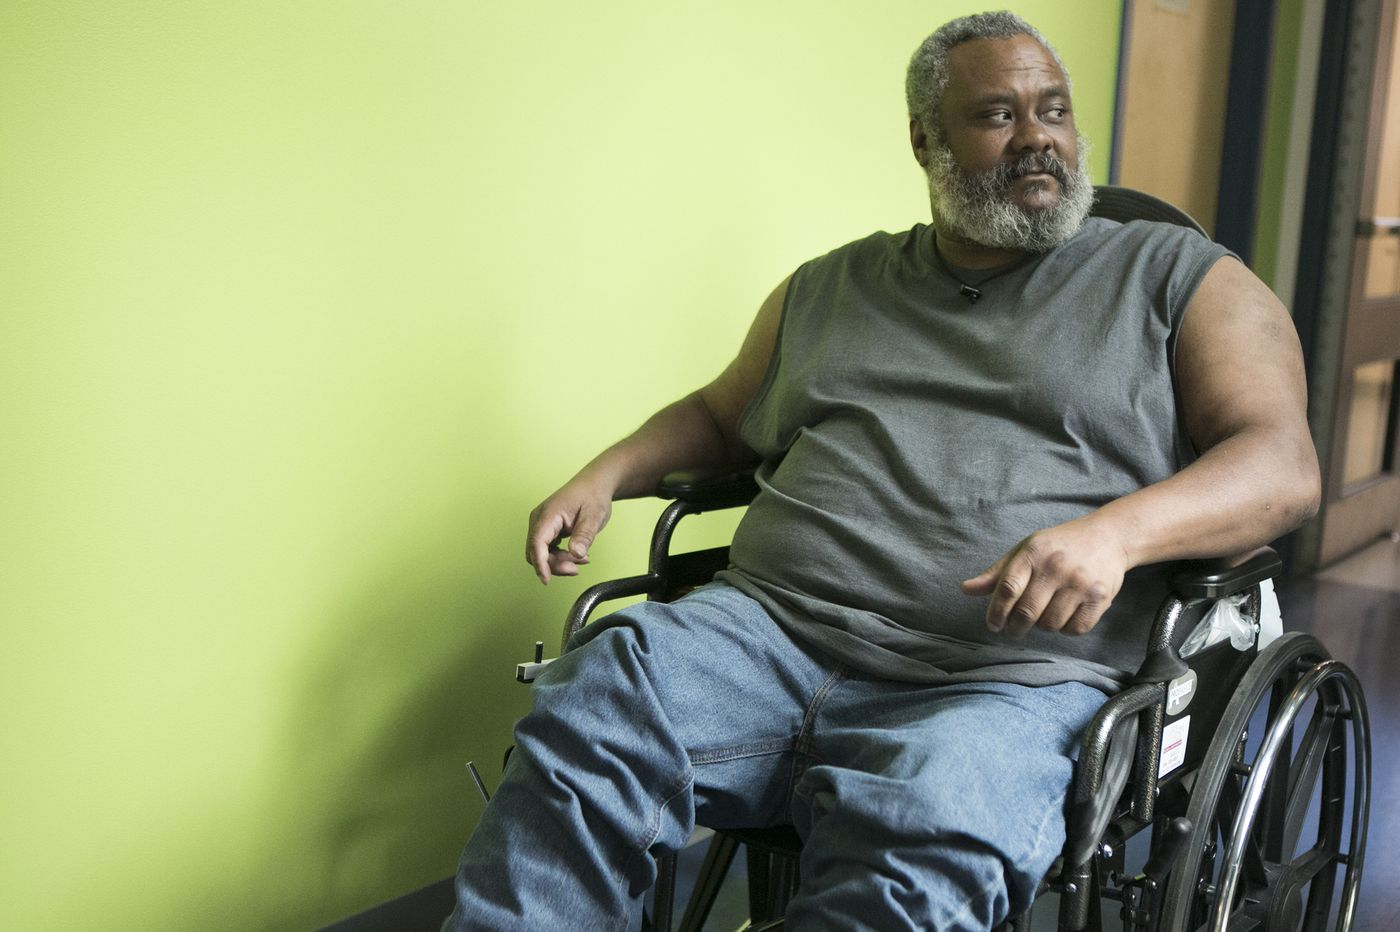 Shelters, hospitals 'playing ping pong' with Philadelphia's homeless, sick population